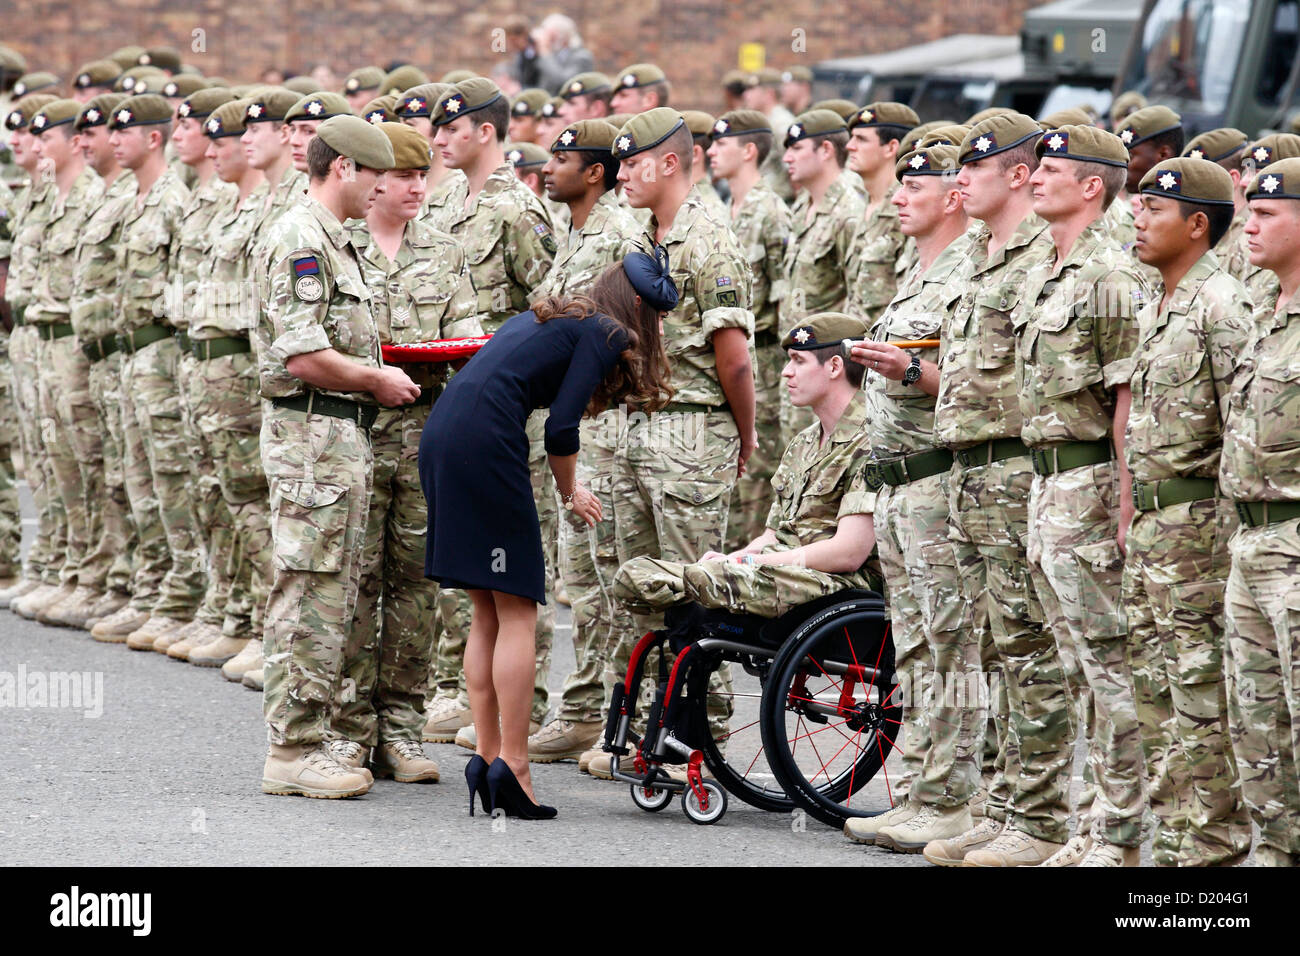 The Duchess of Cambridge, Kate Middleton, hands out operational medals to soldiers from 1st Battalion Irish Guards. Stock Photo